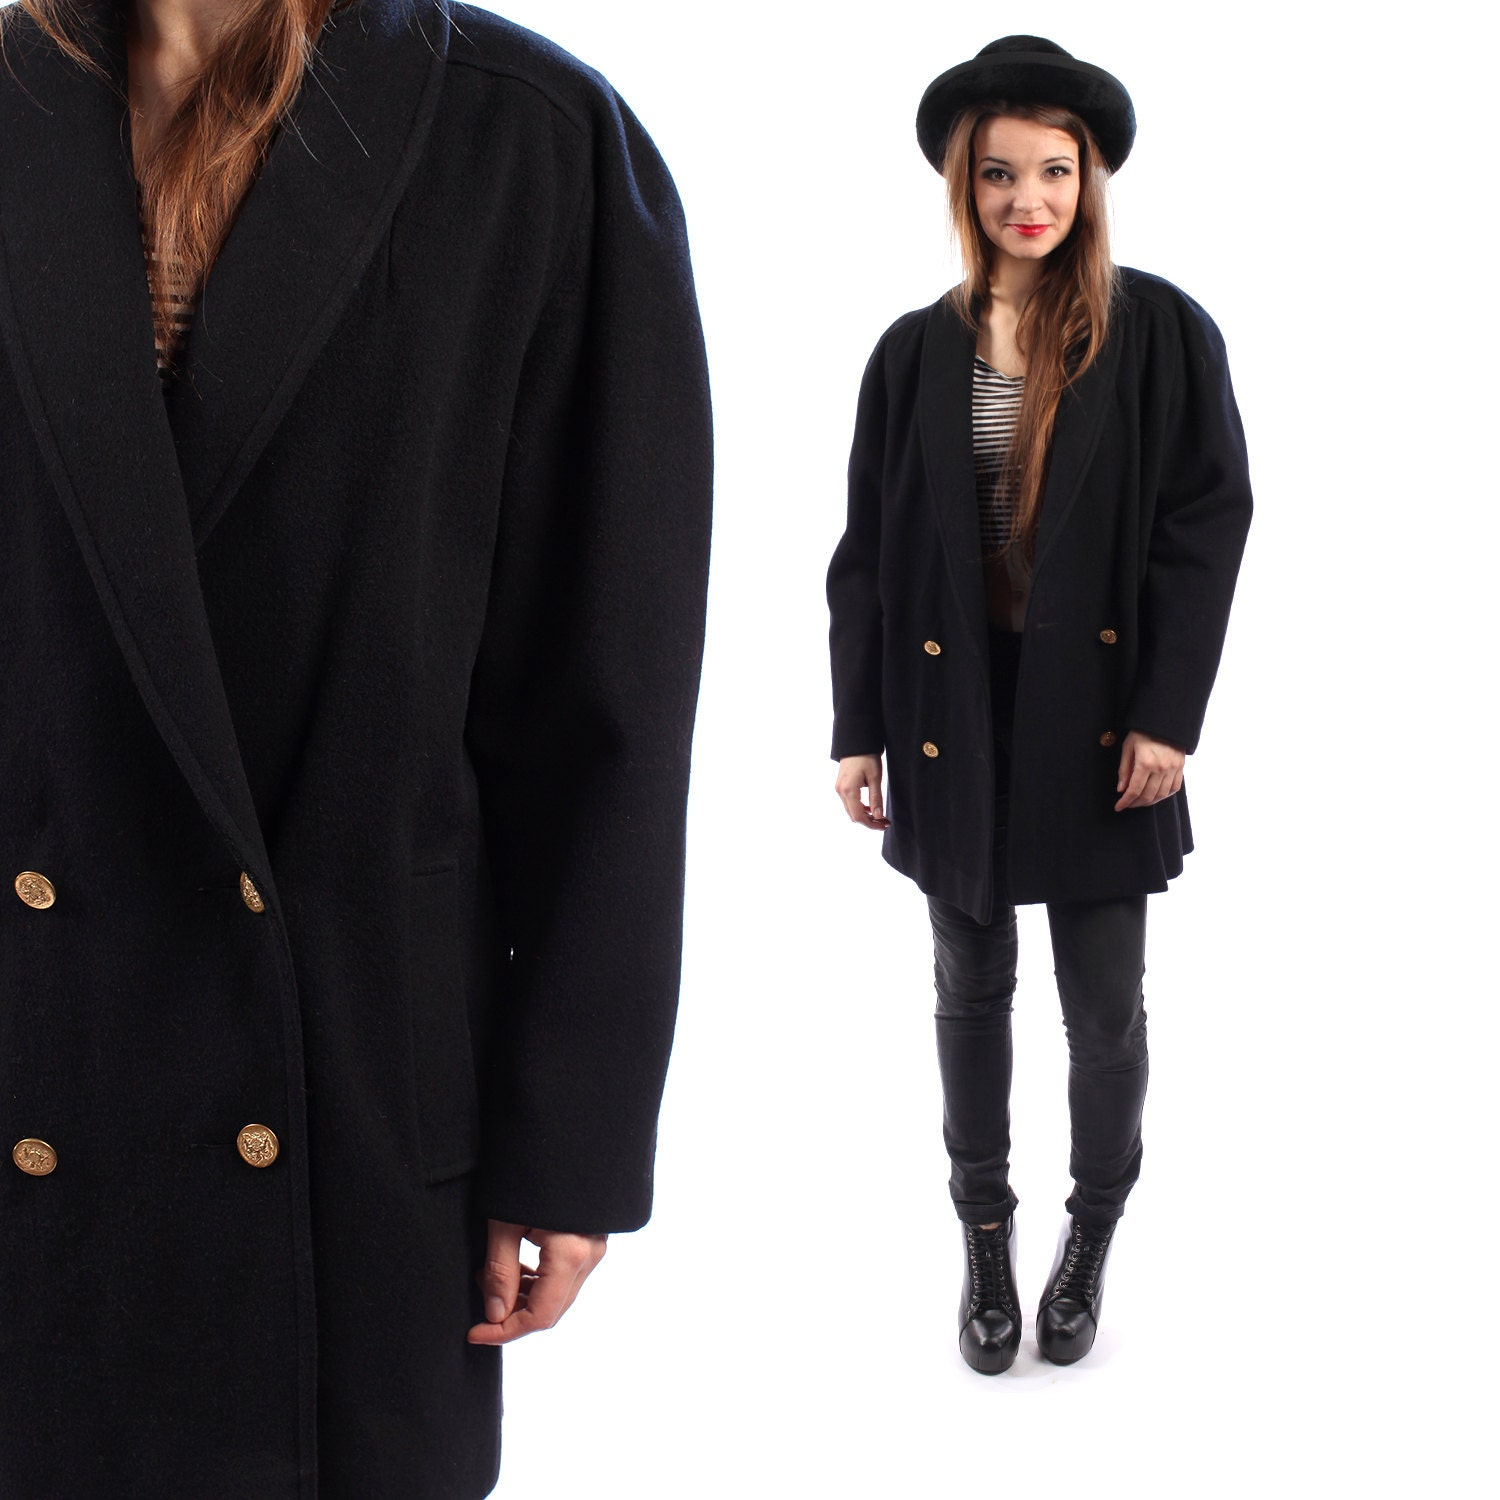 Baggy WOOL Coat Short DUSTER Jacket Minimalist Oversized BLACK